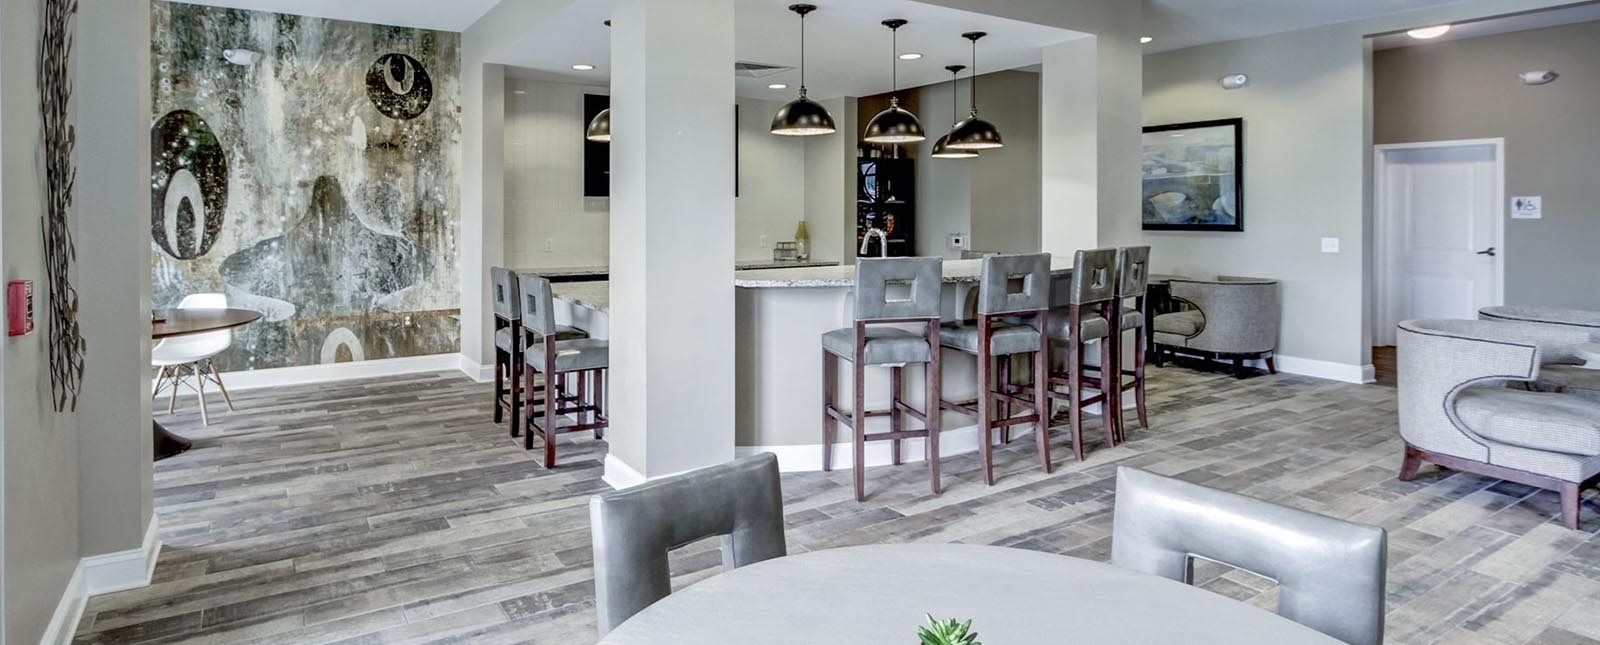 Resident Lounge of The Haven luxury apartments in Malvern, PA